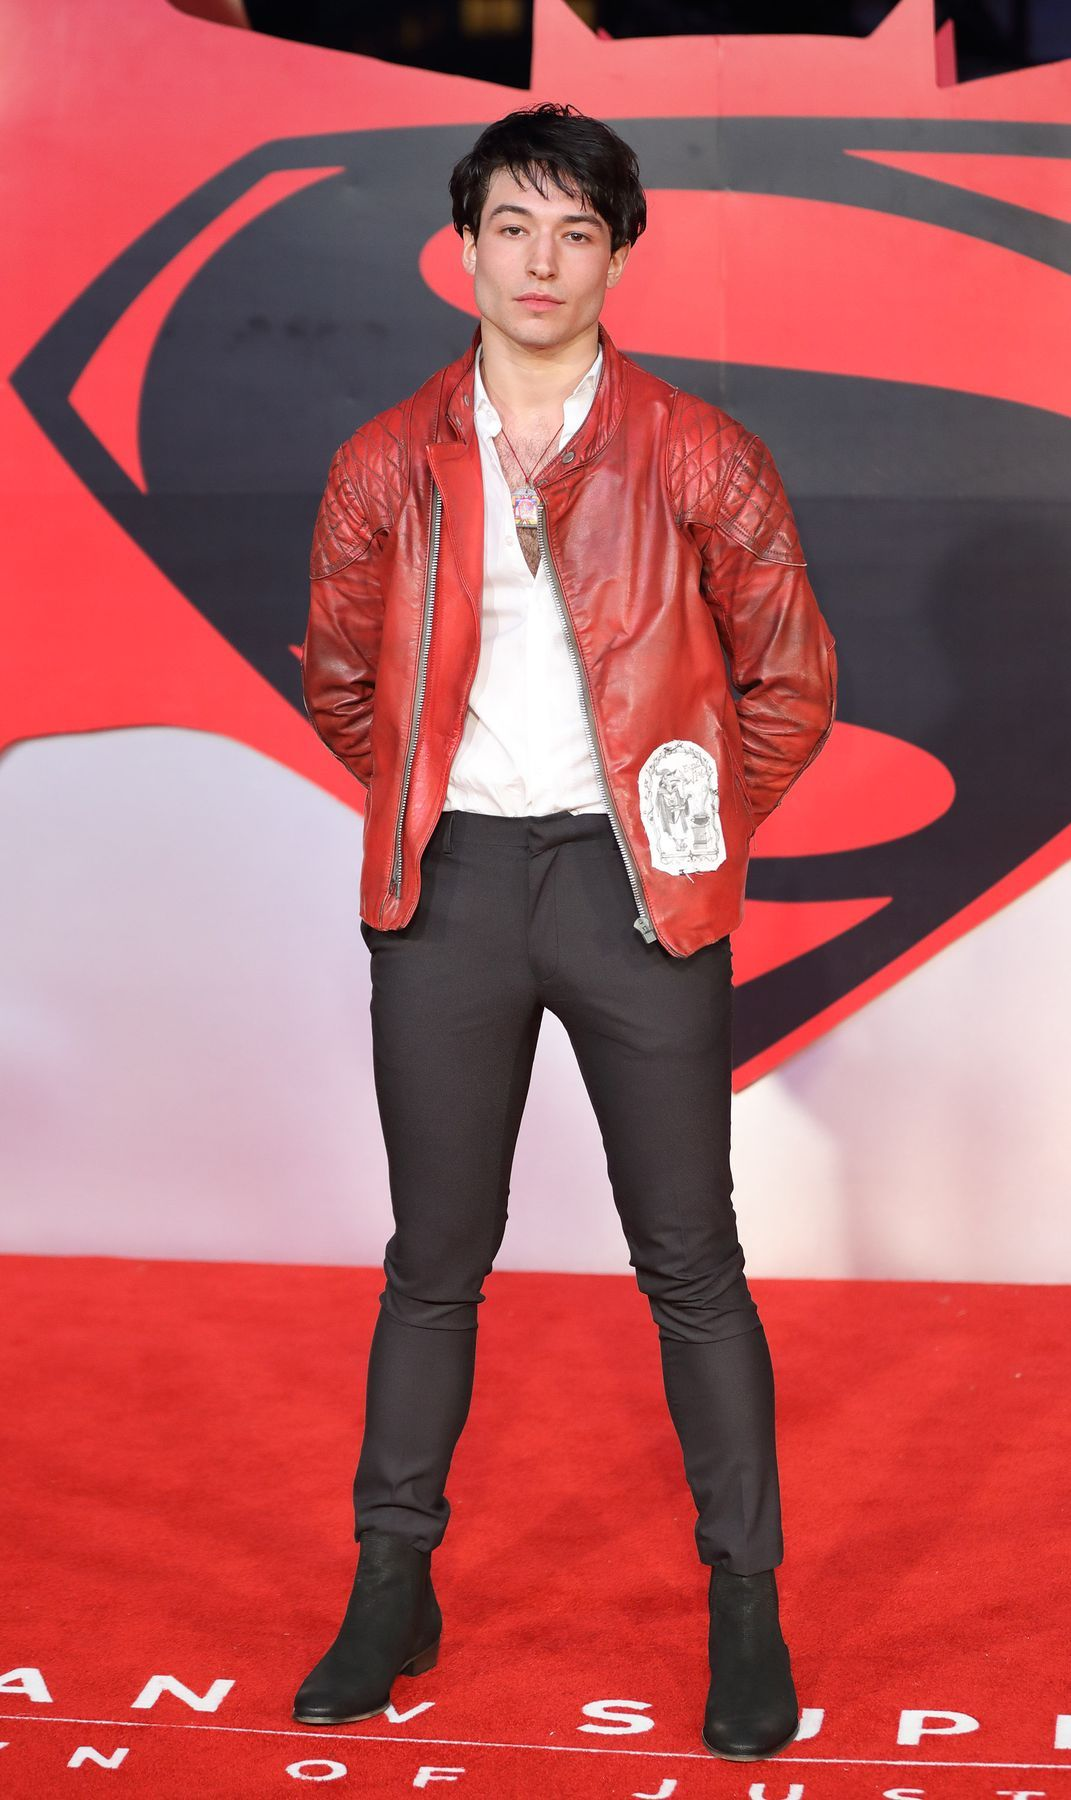 We Need To Talk About Ezra Millers Buff New Superhero Body Baes